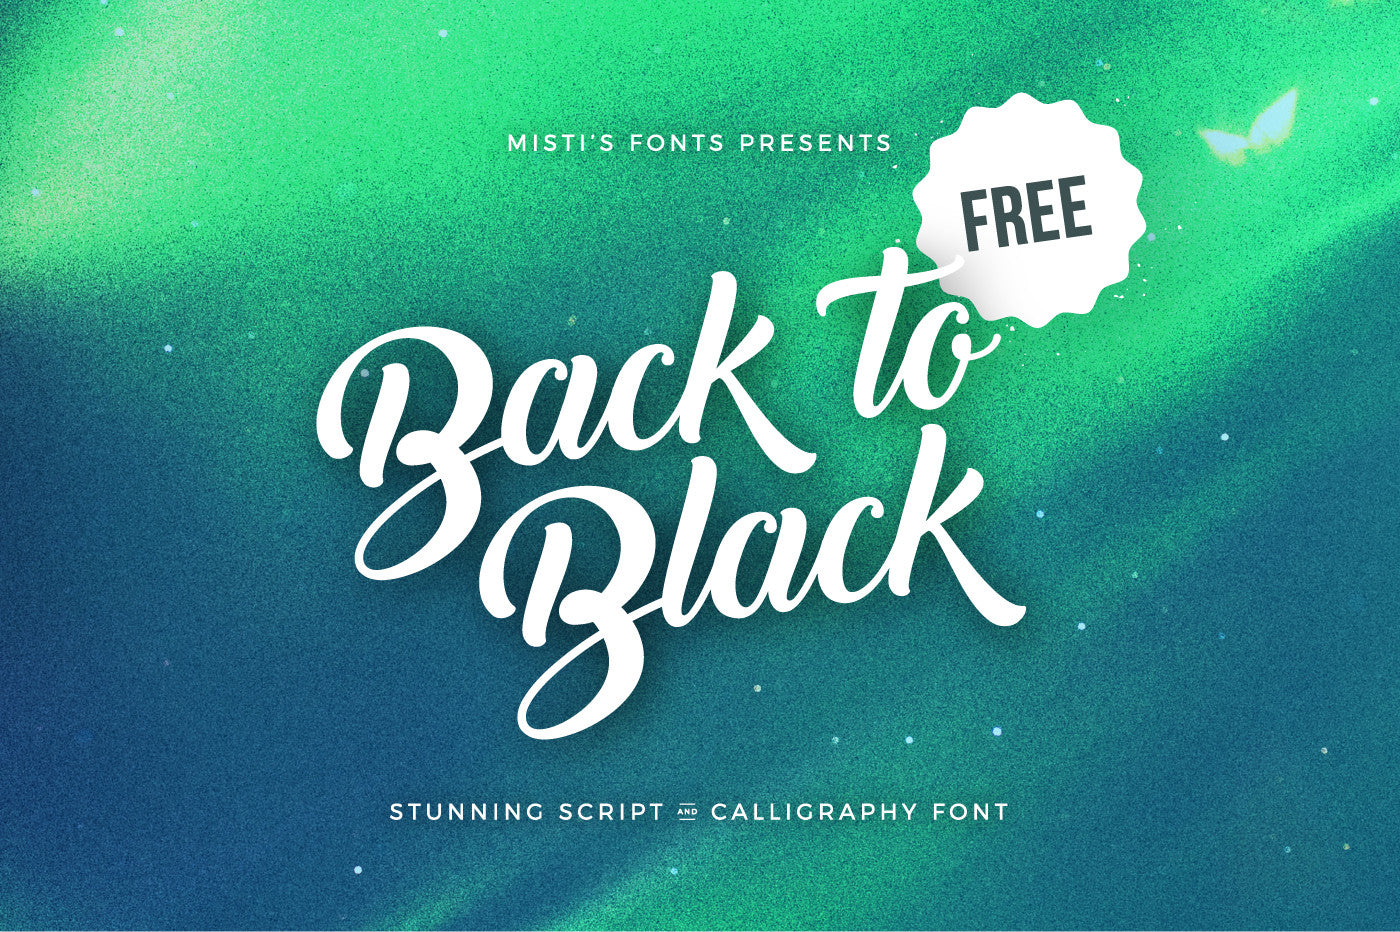 Back to Black - Free Script & Calligraphy Font - CreativeBooster